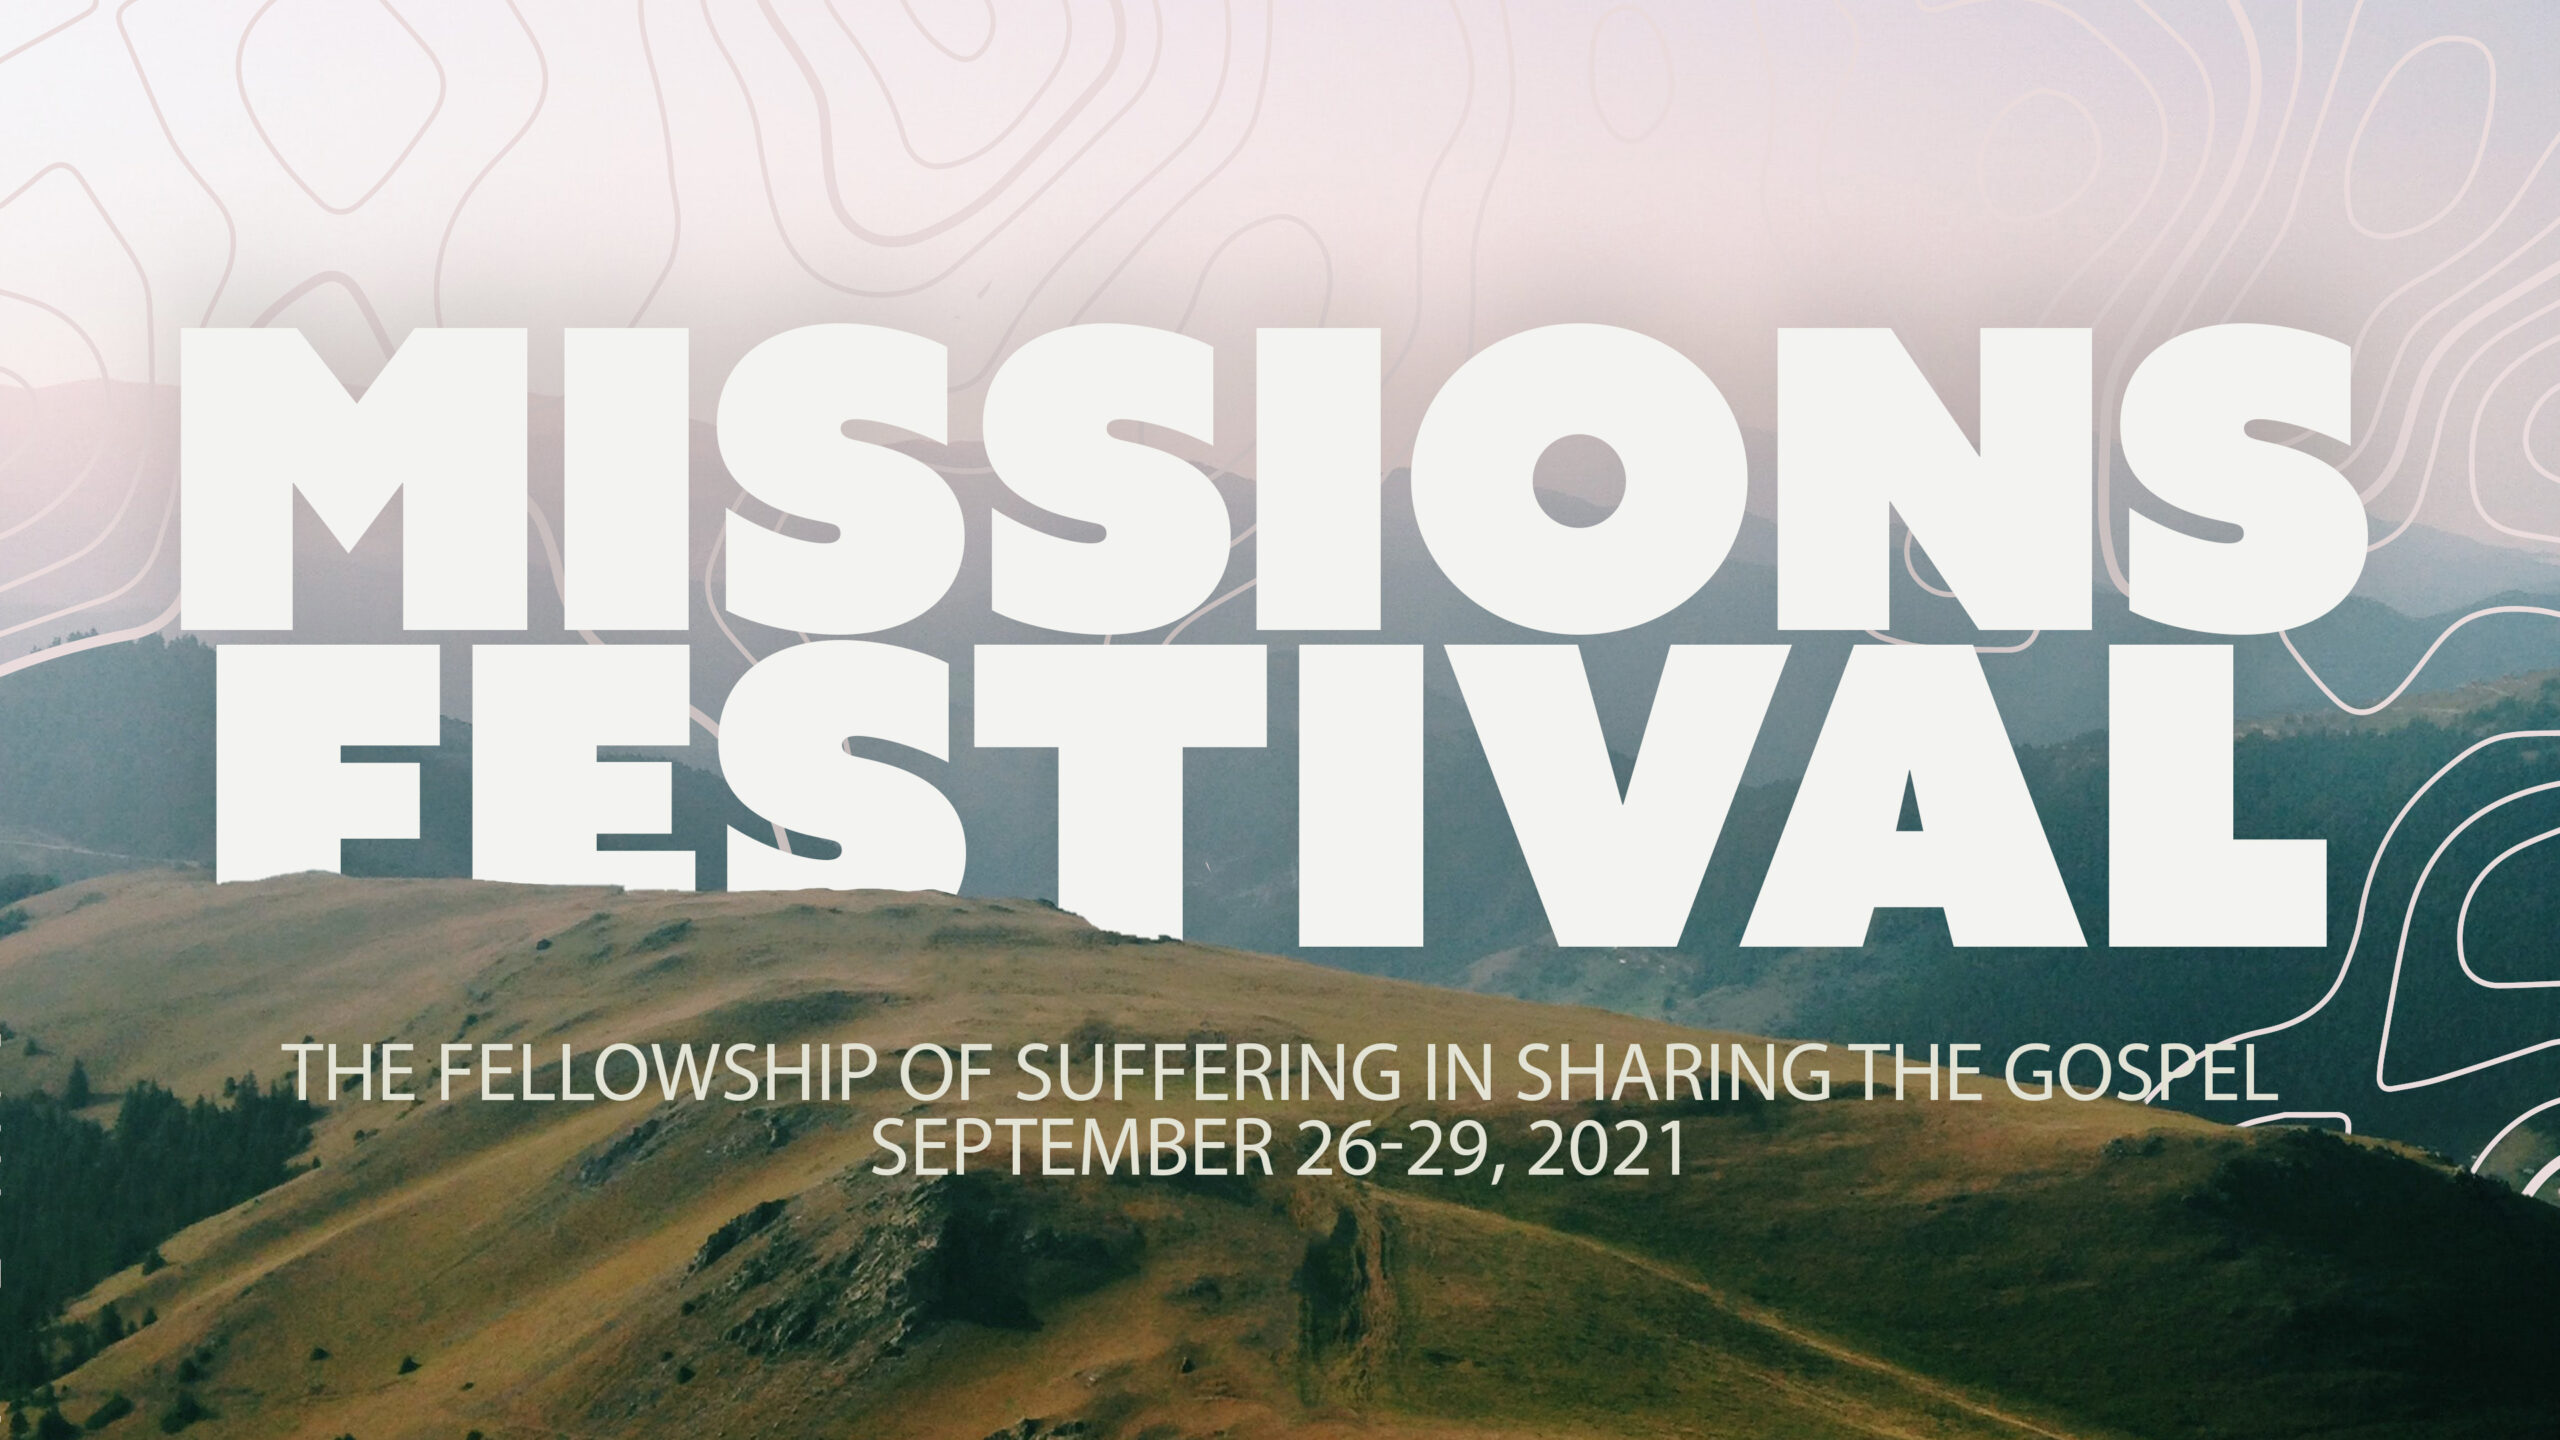 Missions Festival 2021 Schedule